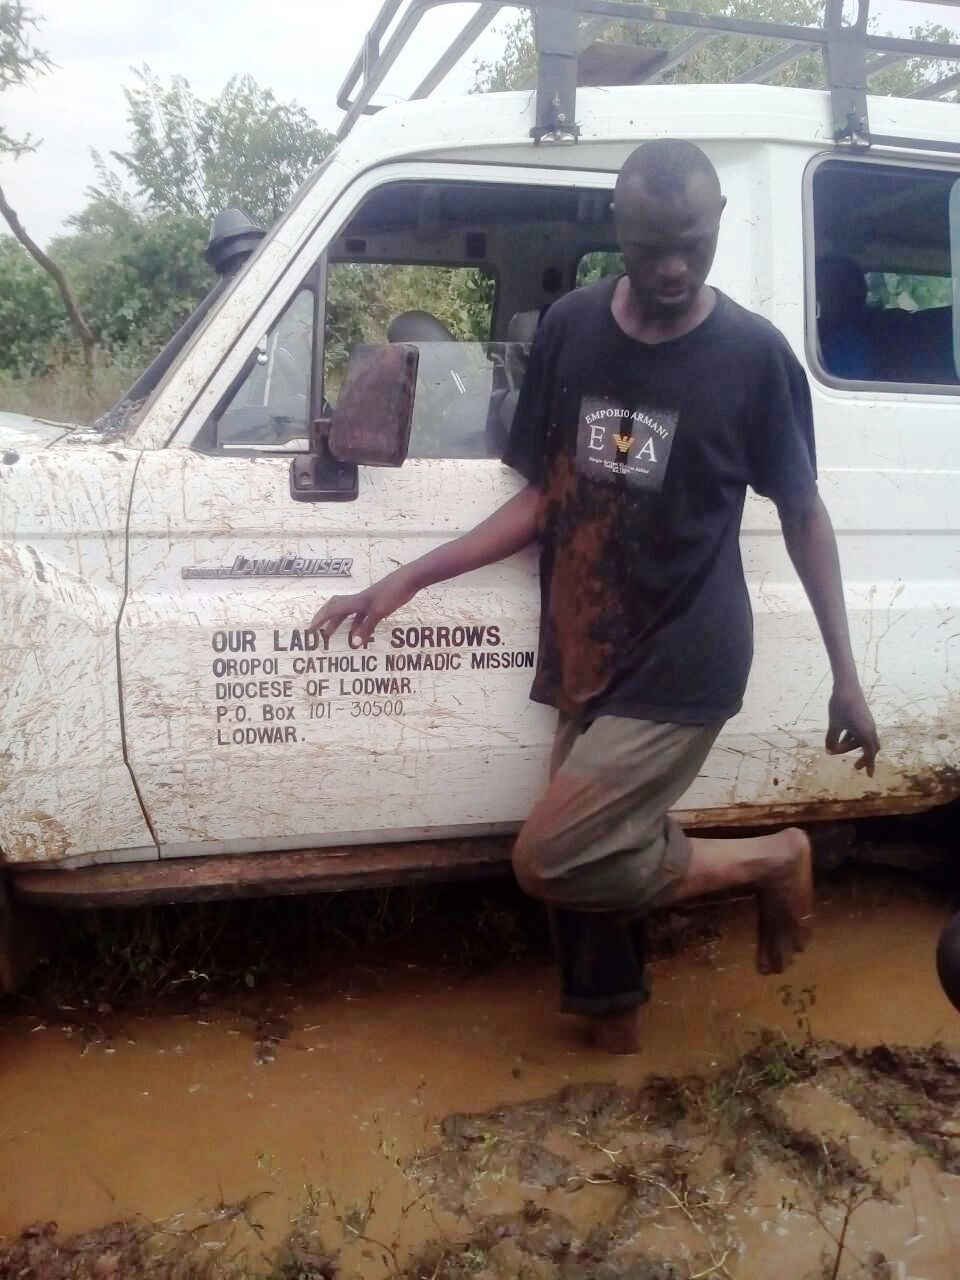 A man stands next to a truck that is stopped in muddy water